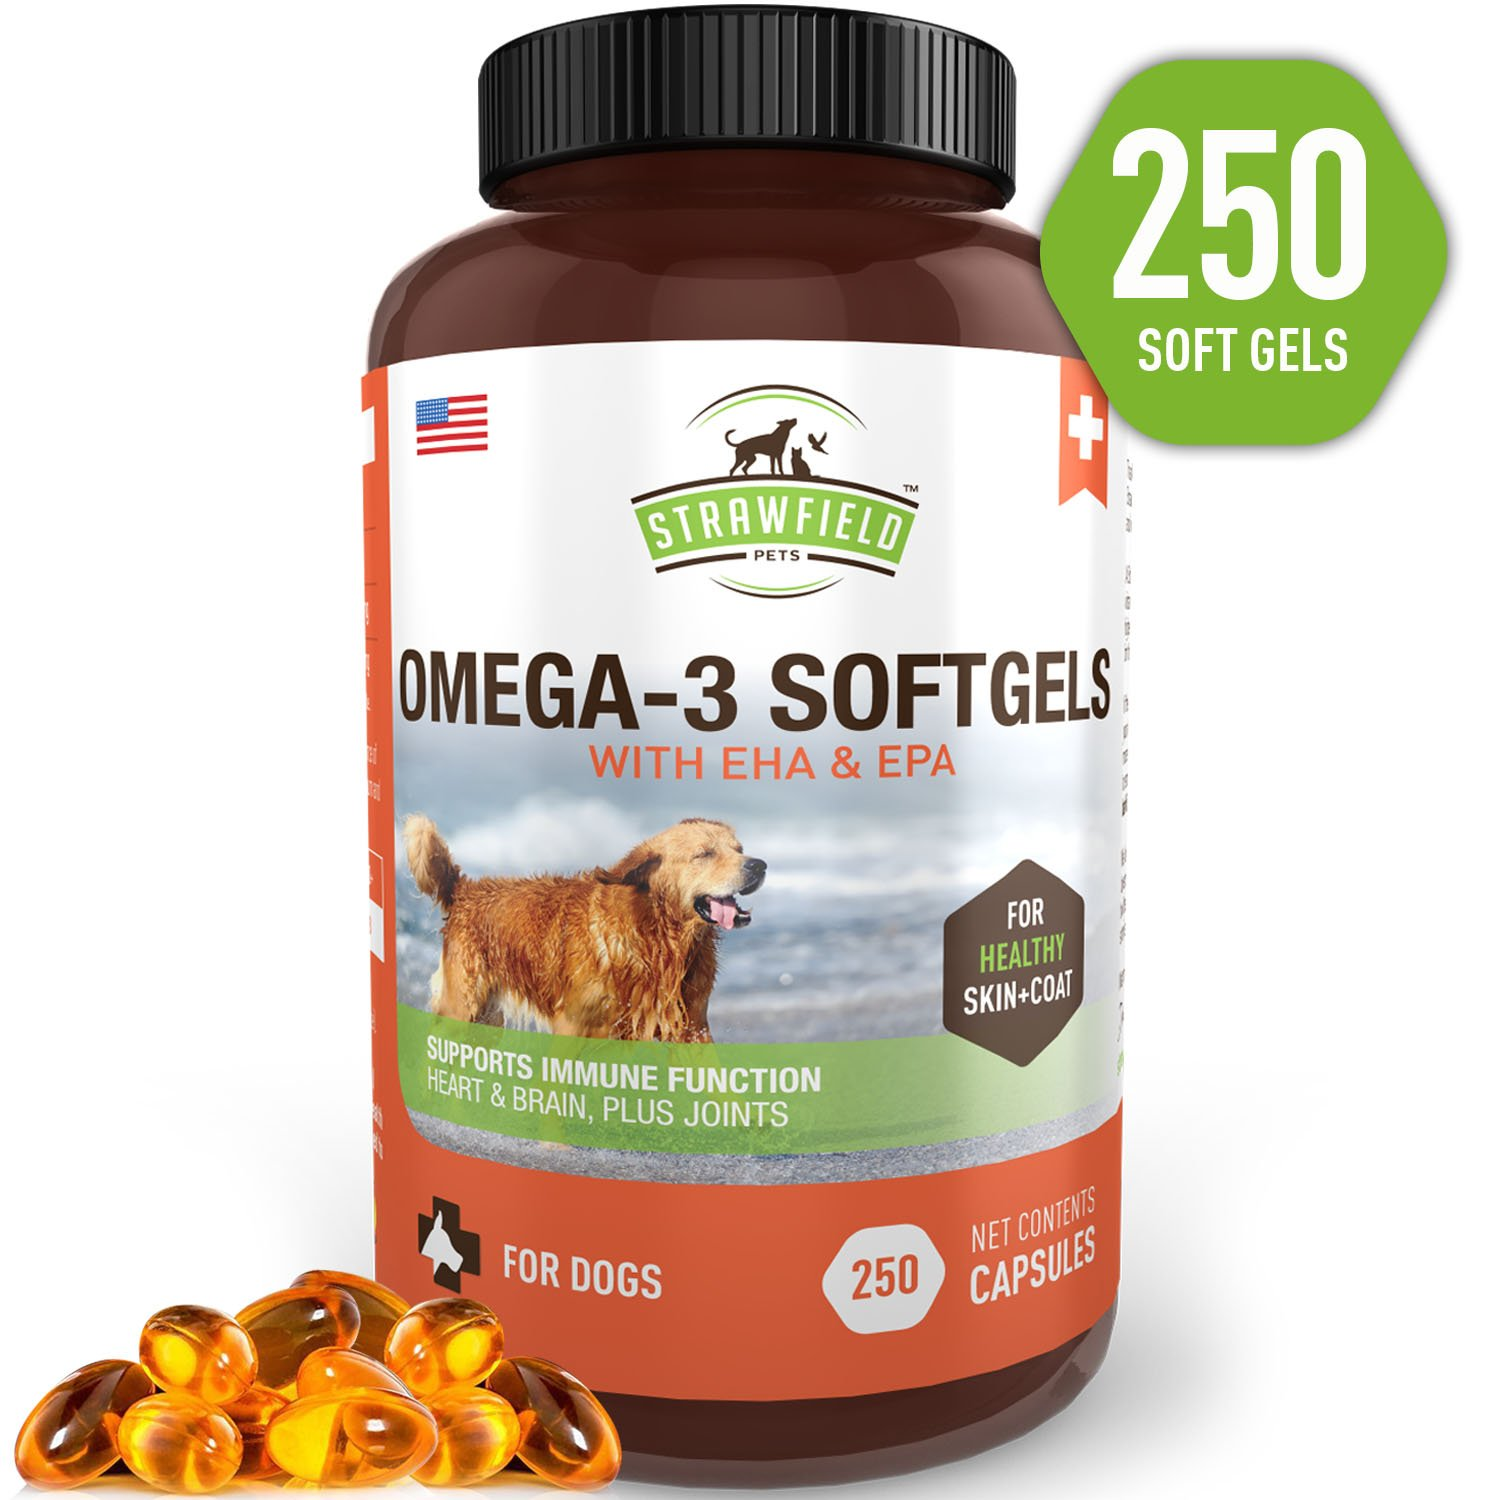 Omega 3 Fish Oil for Dogs, 250 Softgel Pills, 1000 mg EPA DHA Dog Fish Oil Pet Supplement for Joint Support Arthritis Pain Relief, Allergy Itch, Shedding, Healthy Coat, Dry Itching Skin, Hot Spot, USA by Strawfield Pets